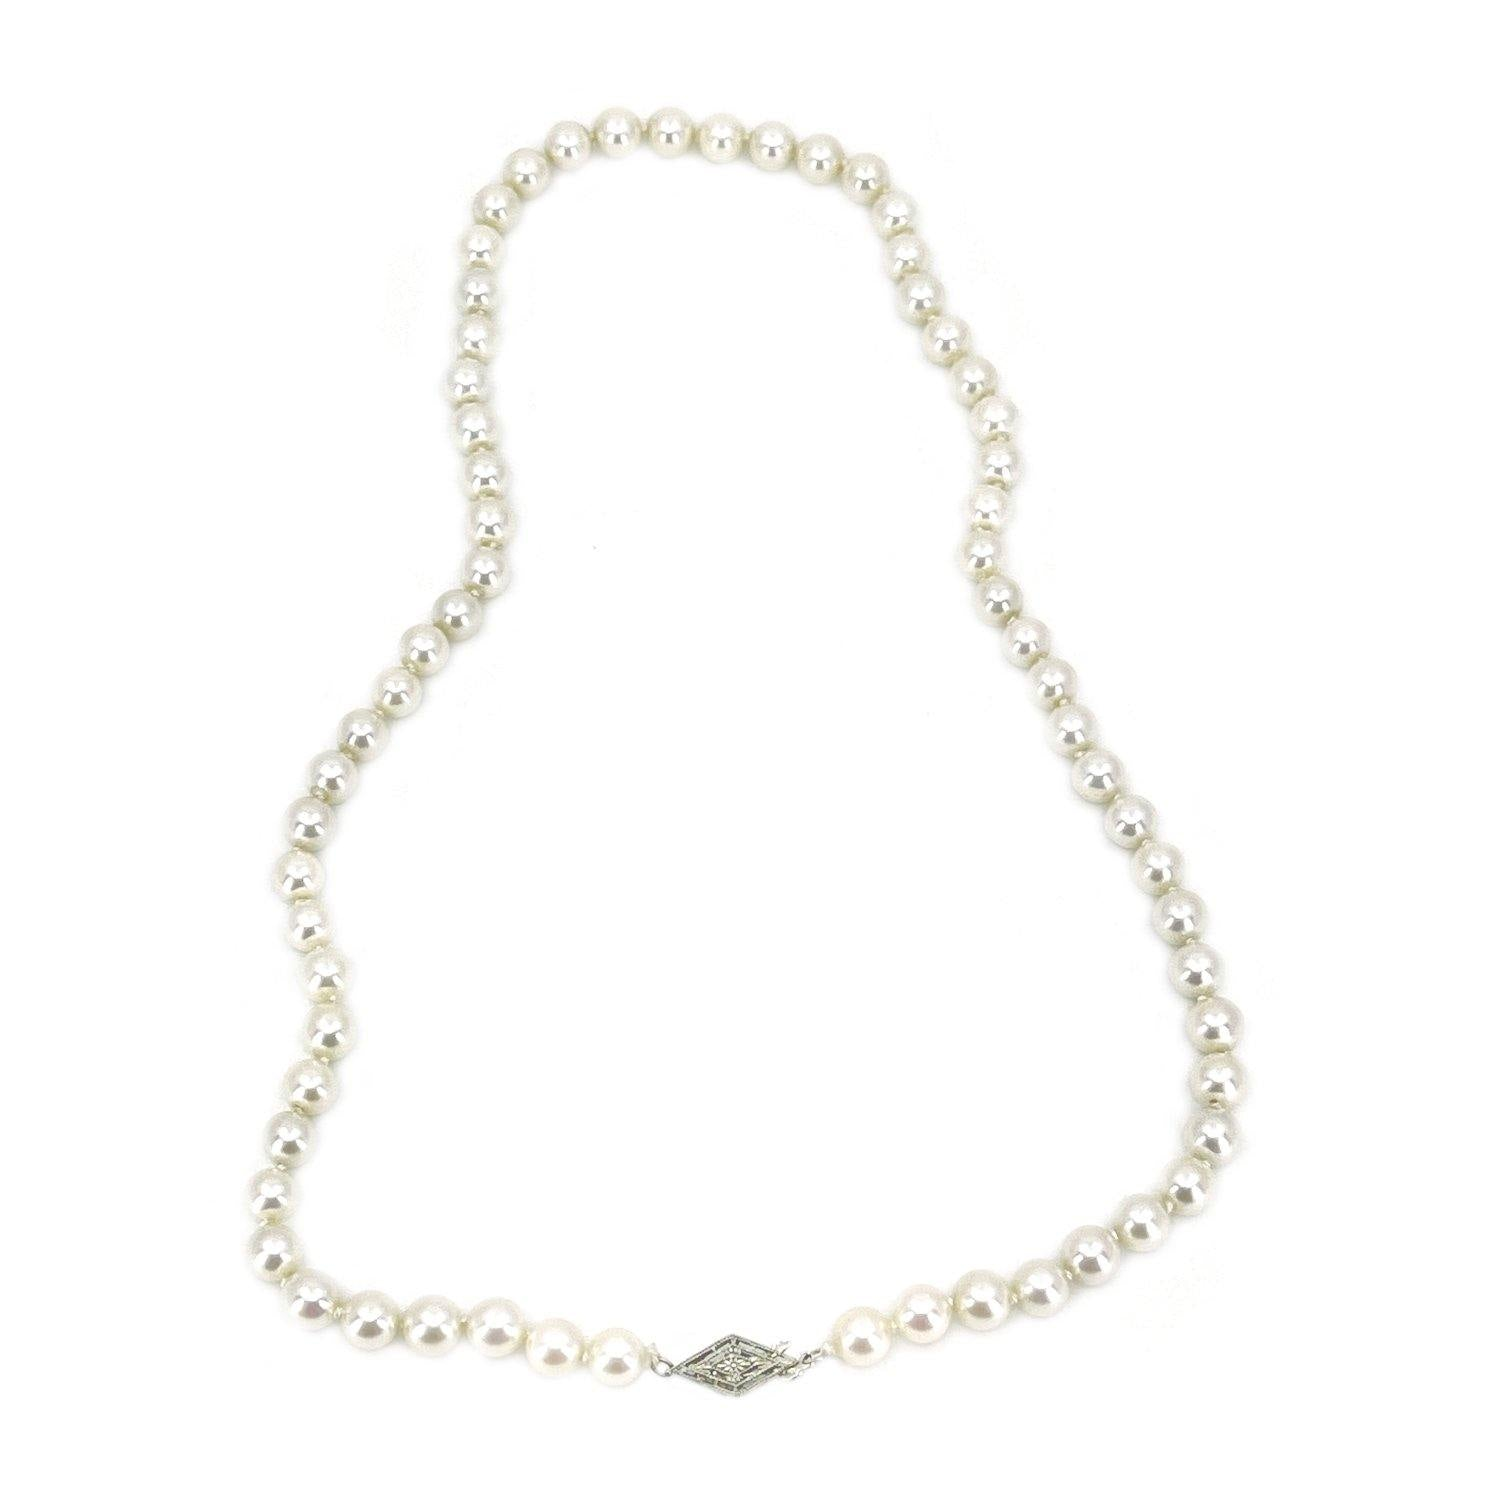 Art Deco Japanese Saltwater Cultured Akoya Pearl Necklace - 18K White Gold 18 Inch